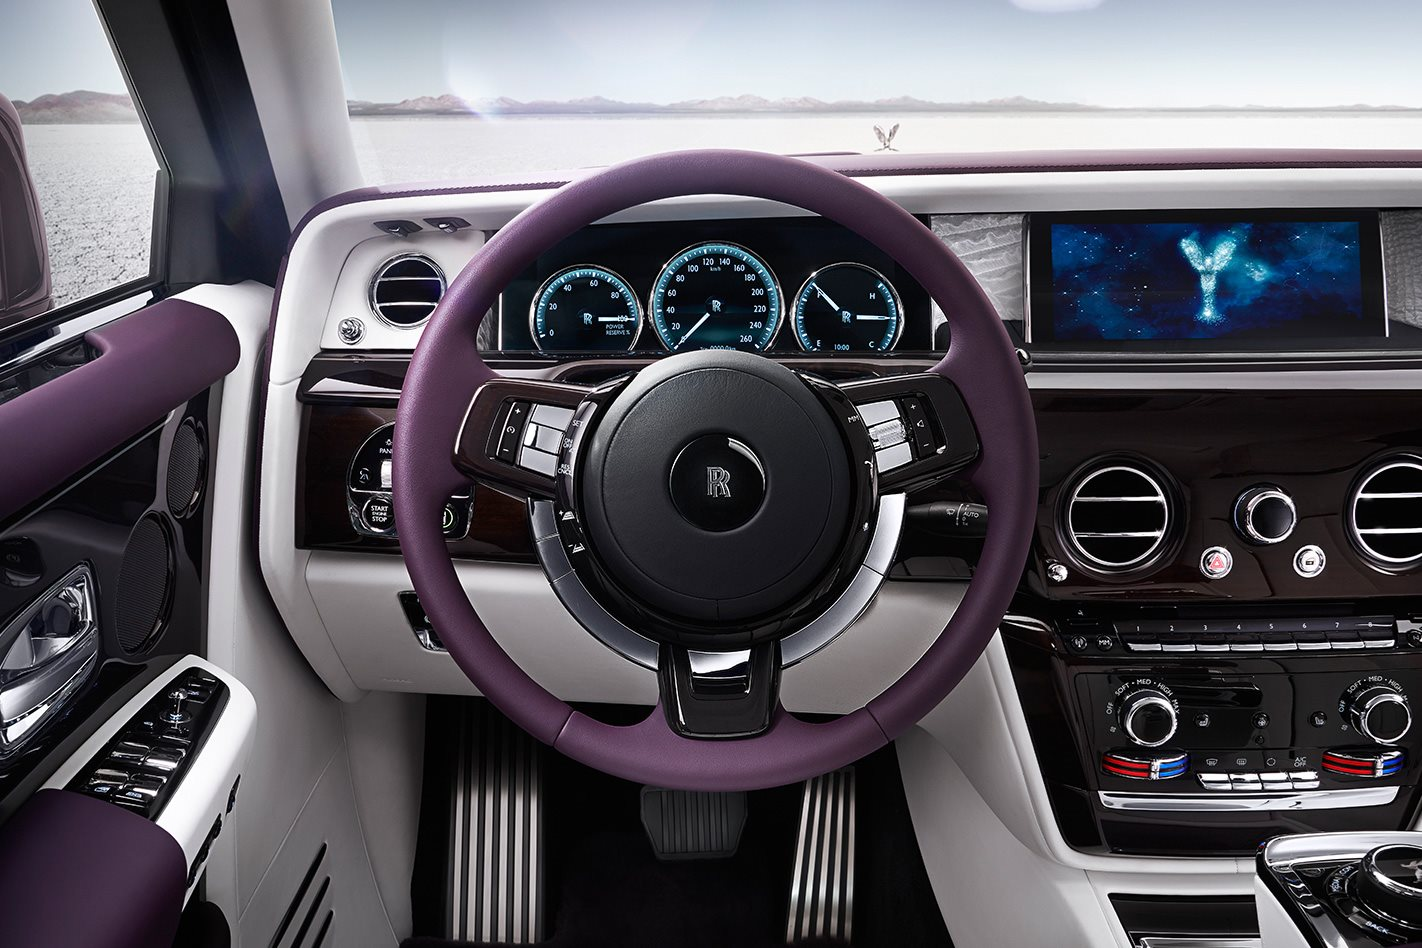 2018 Rolls Royce Phantom steering wheel